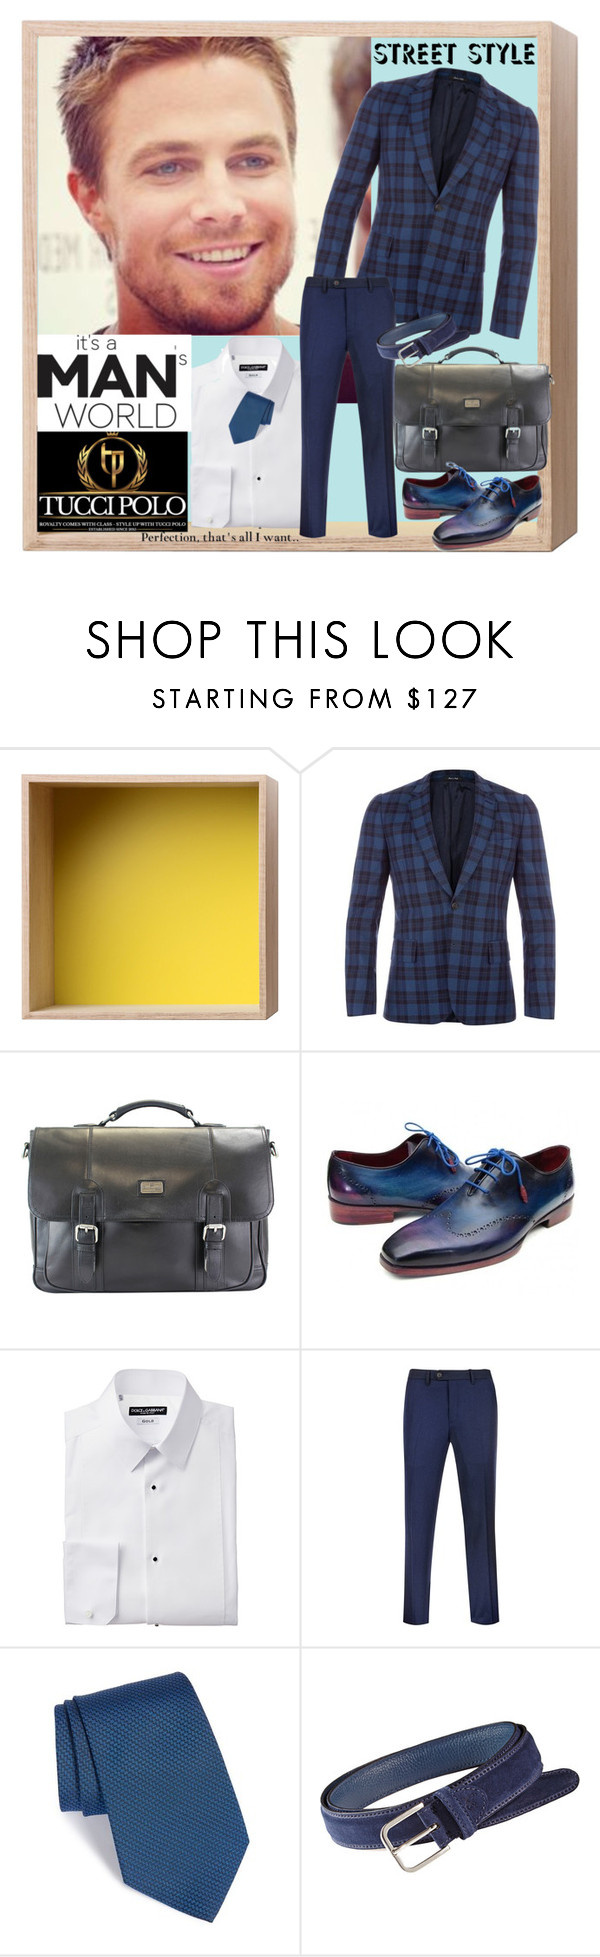 """TUCCIPOLO  -  Men's Fashion"" by fantasiegirl ❤ liked on Polyvore featuring Muuto, Paul Smith, The British Belt Company, Ted Baker, Versace, women's clothing, women's fashion, women, female and woman"